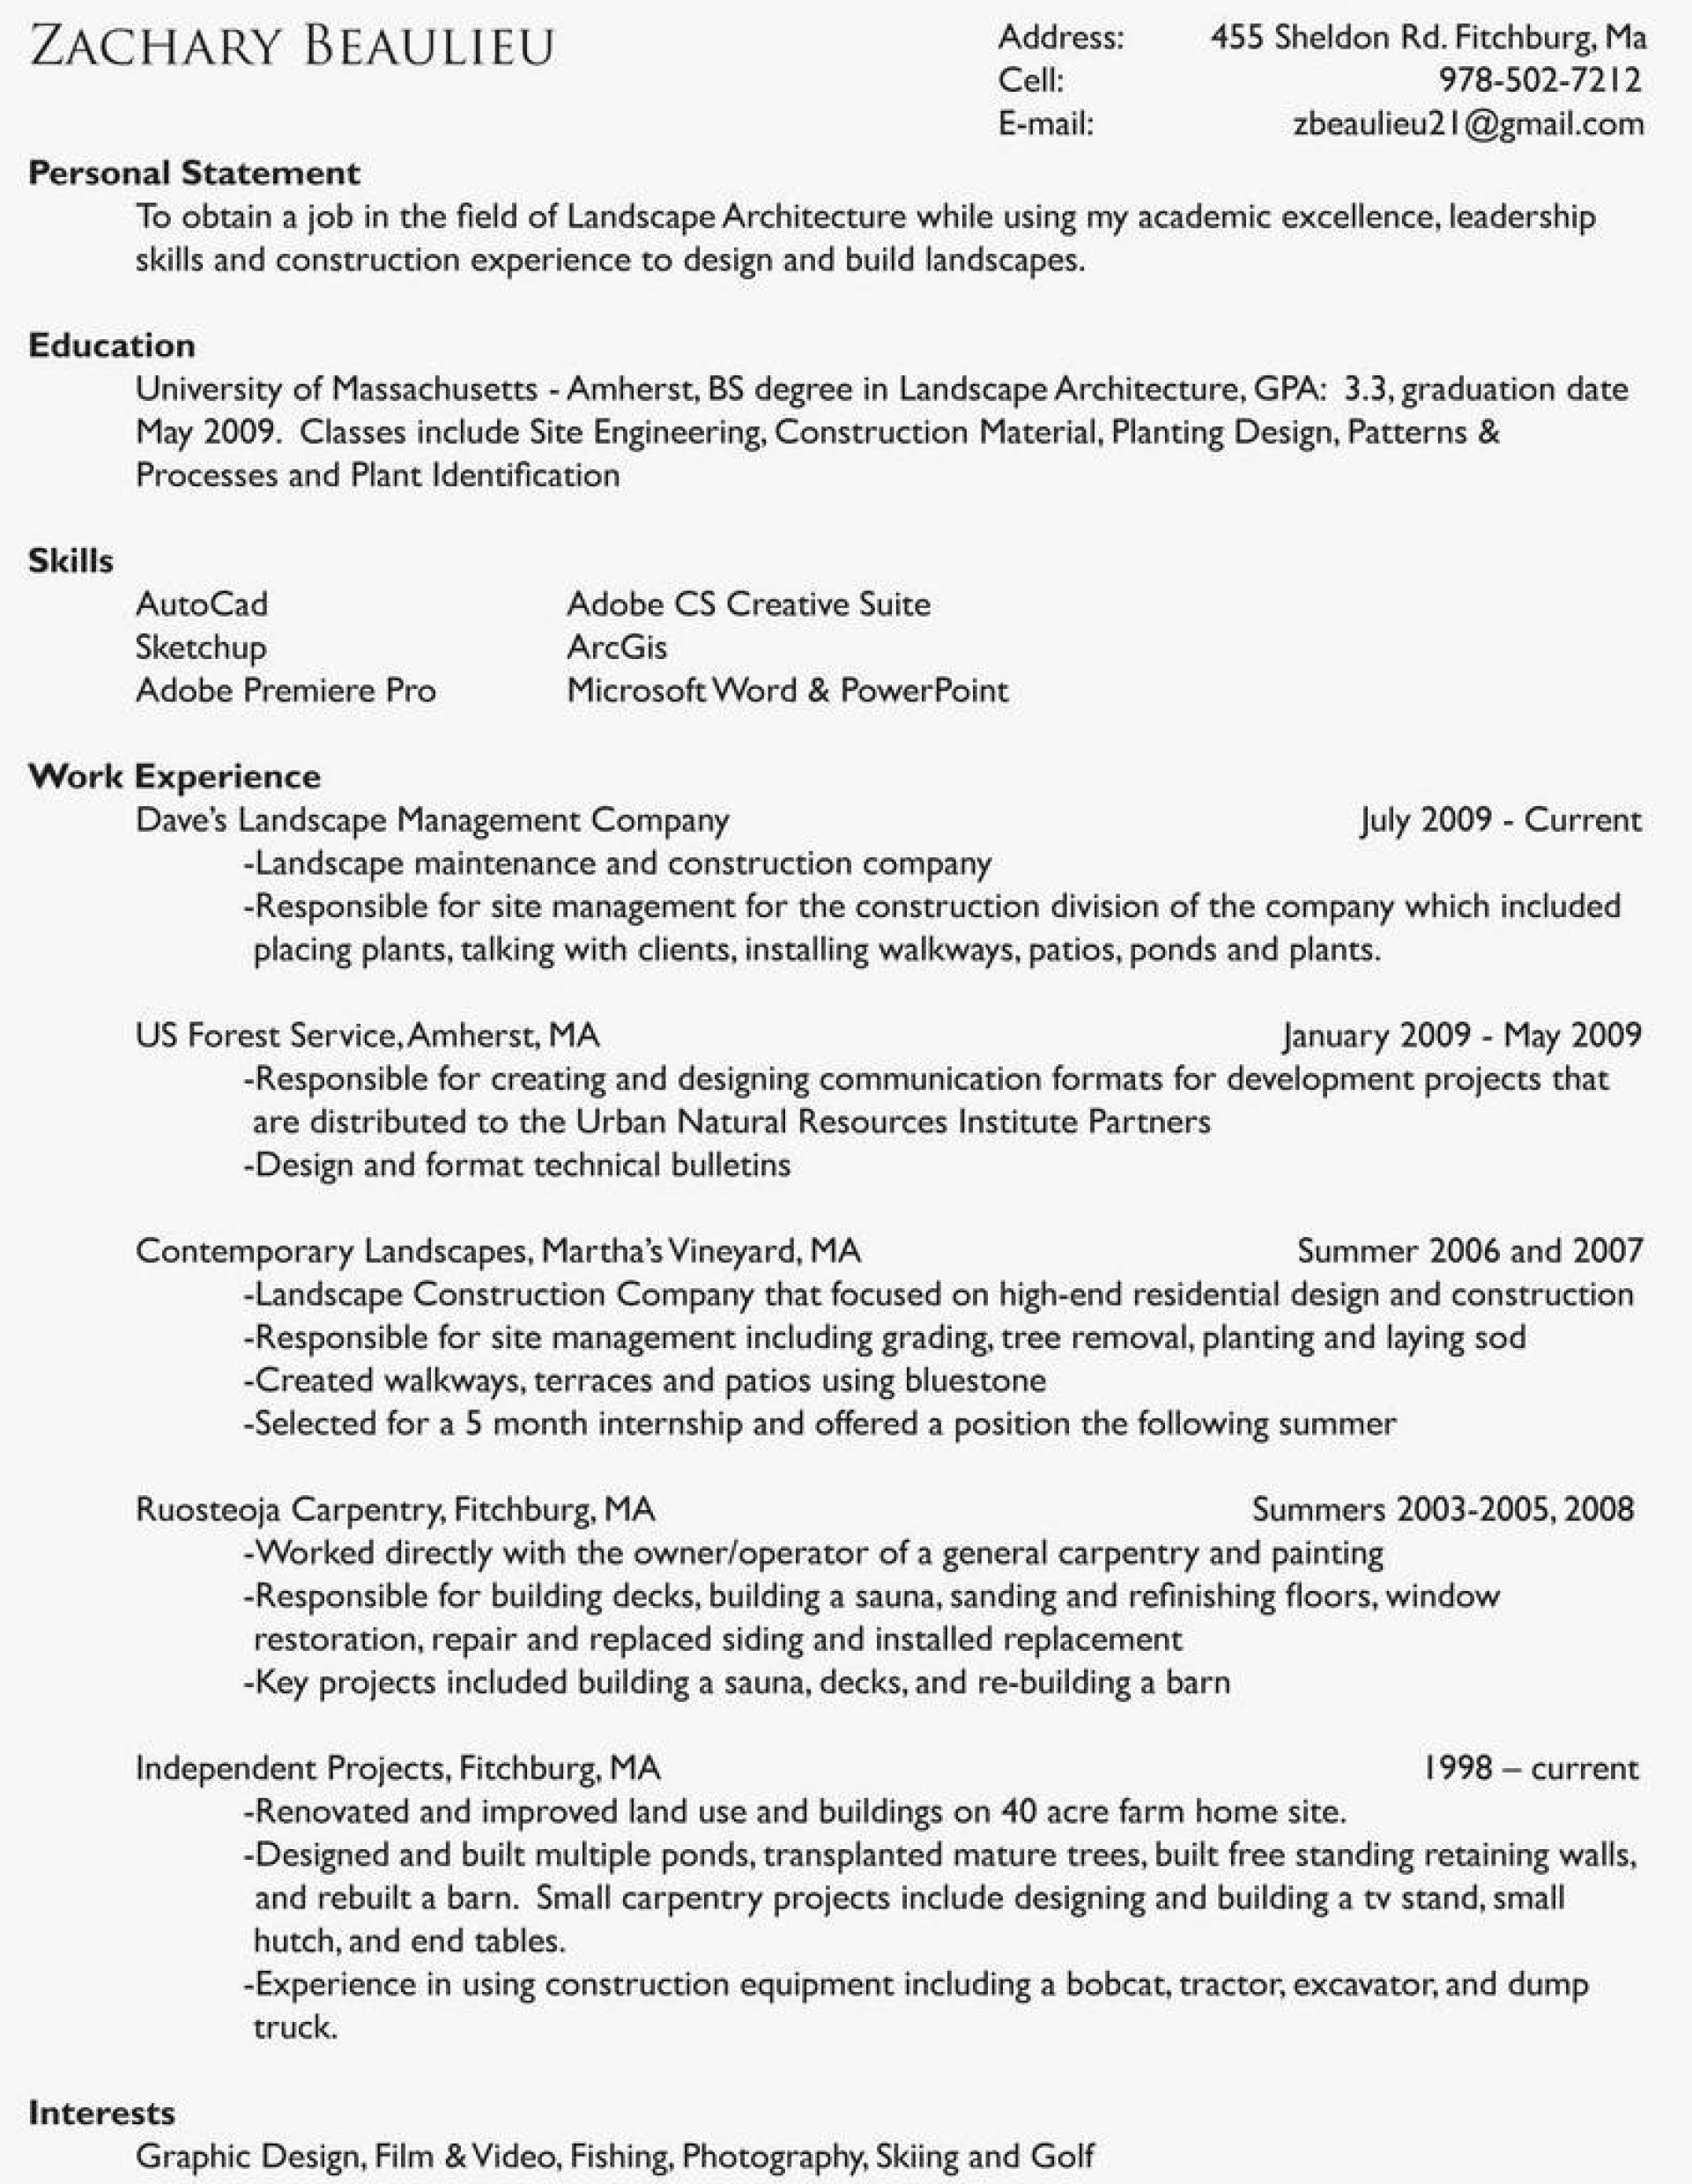 019 Esthetician Resume Skills Inspirational Business Management Essay Topics Writing Service Unethical Of Research Singular Paper Pdf For Techniques 1920